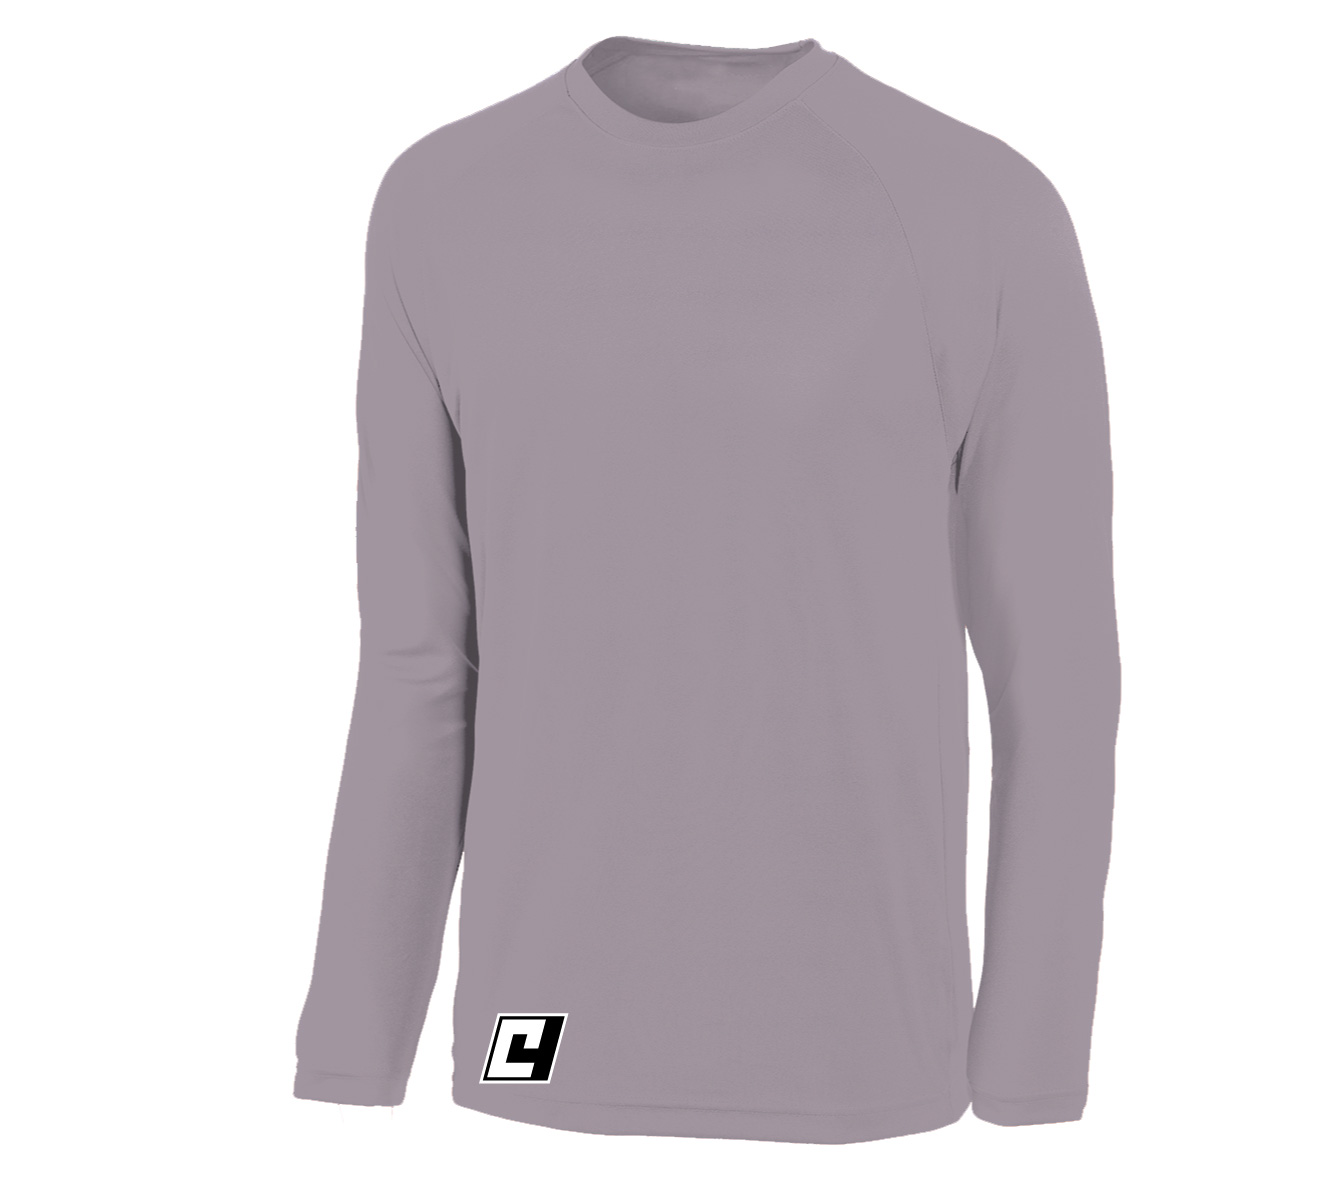 C4 long sleeve basketball shooting shirt in athletic grey by Code Four Athletics